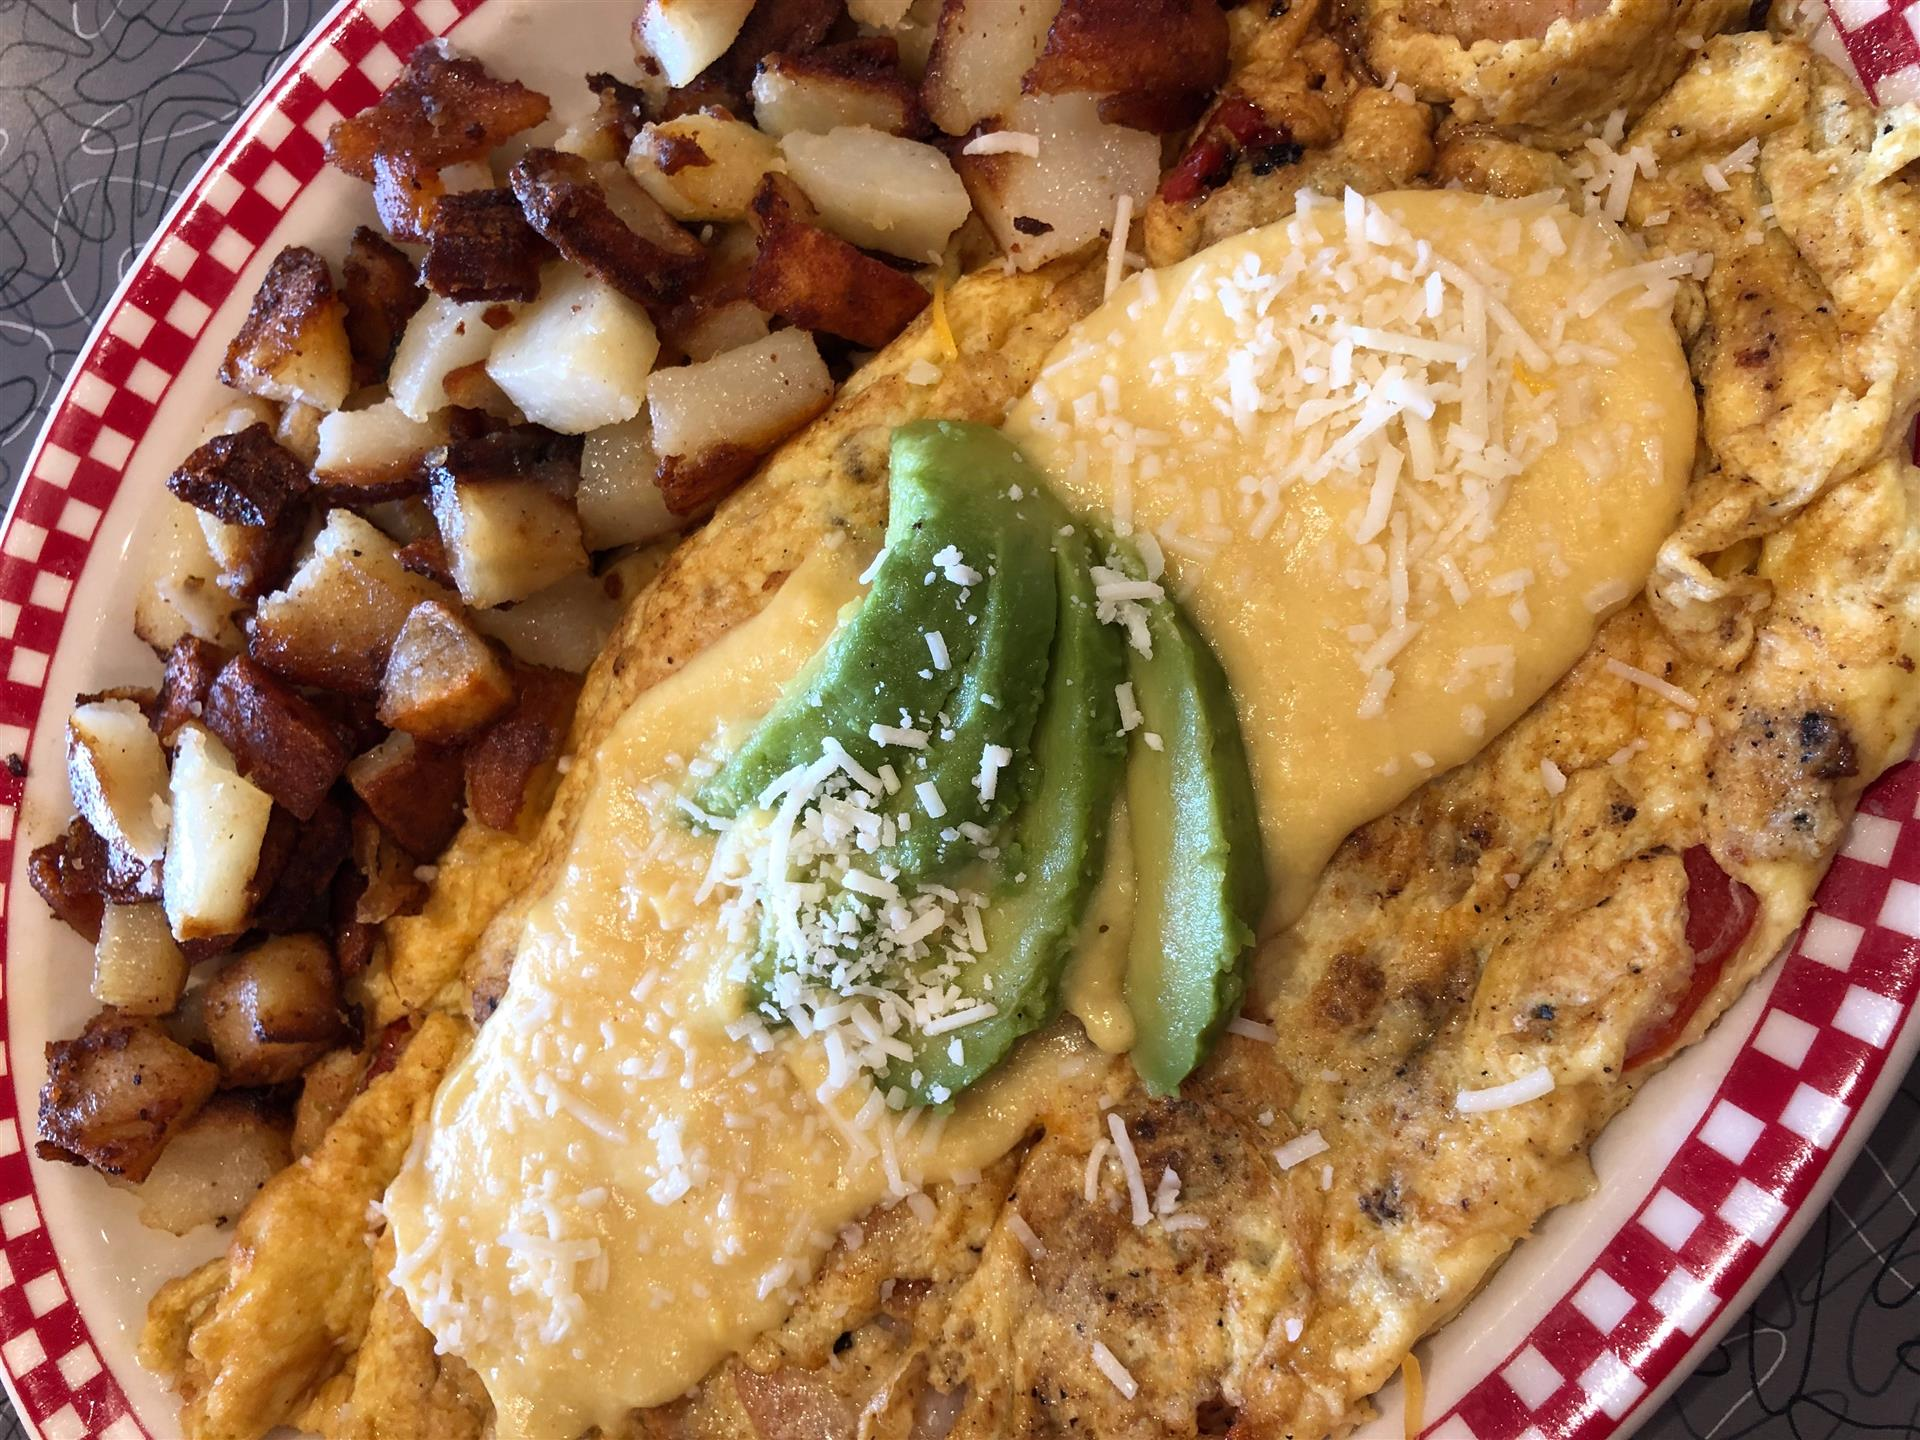 seafood omelet with a side of homefries